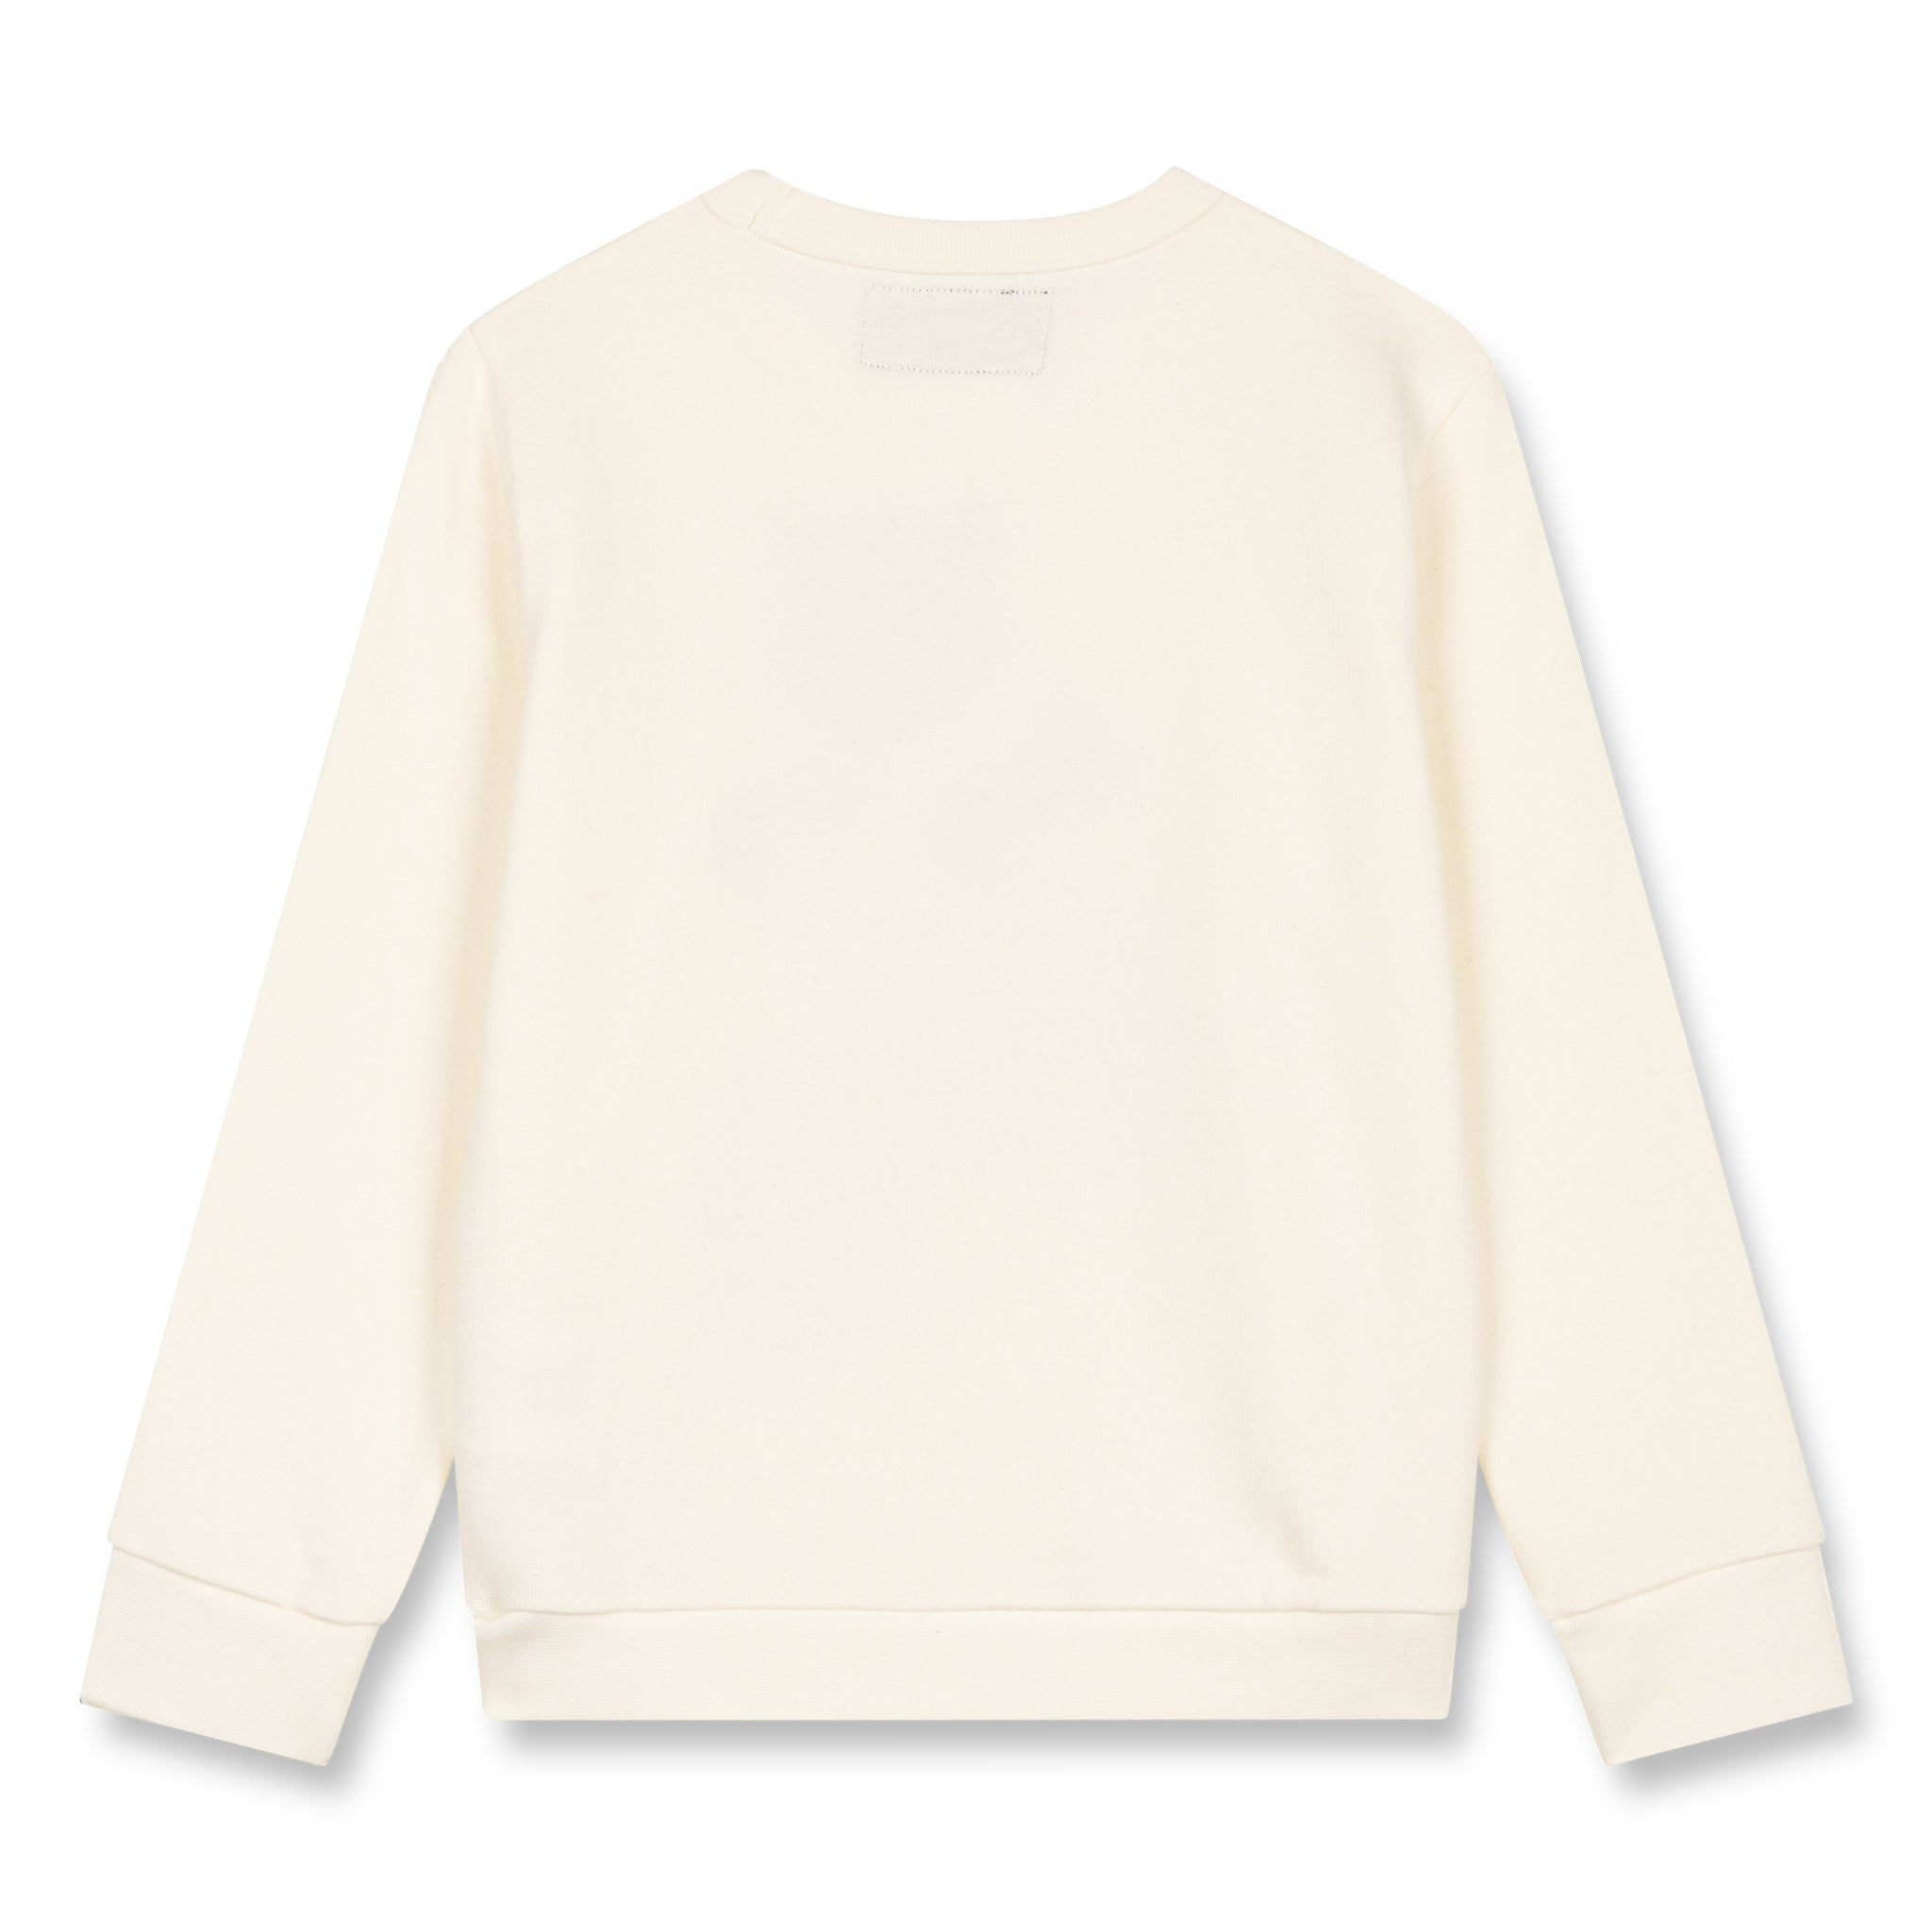 BRIAN Off White Moto Tiger - Crew Neck Sweatshirt 2